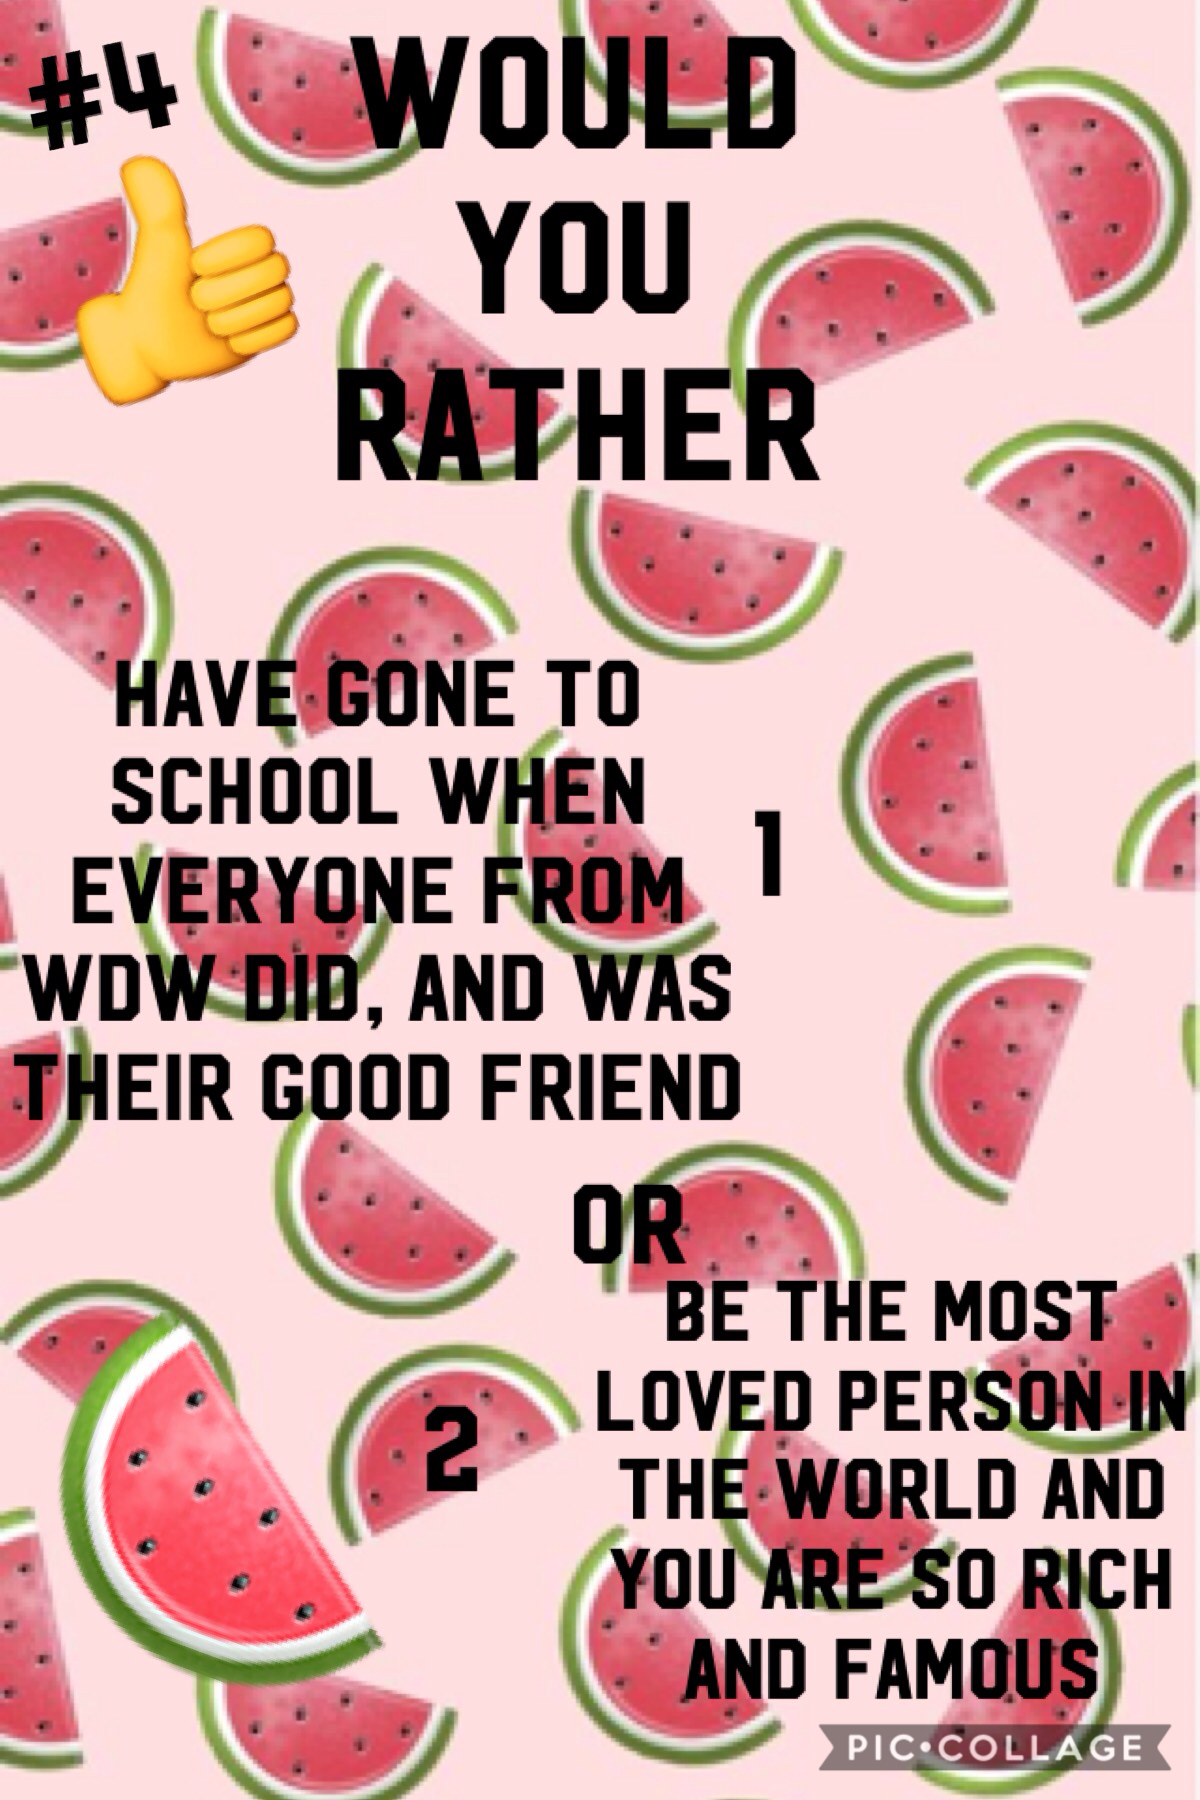 🍉Tap🍉   This is my 4th Would You Rather question. Let me know if your like this thing I'm doing. As you have probably already guessed, the questions are WDW themed. If I had to choose one, I would choose 1. I would love to go to school with Why Don't We